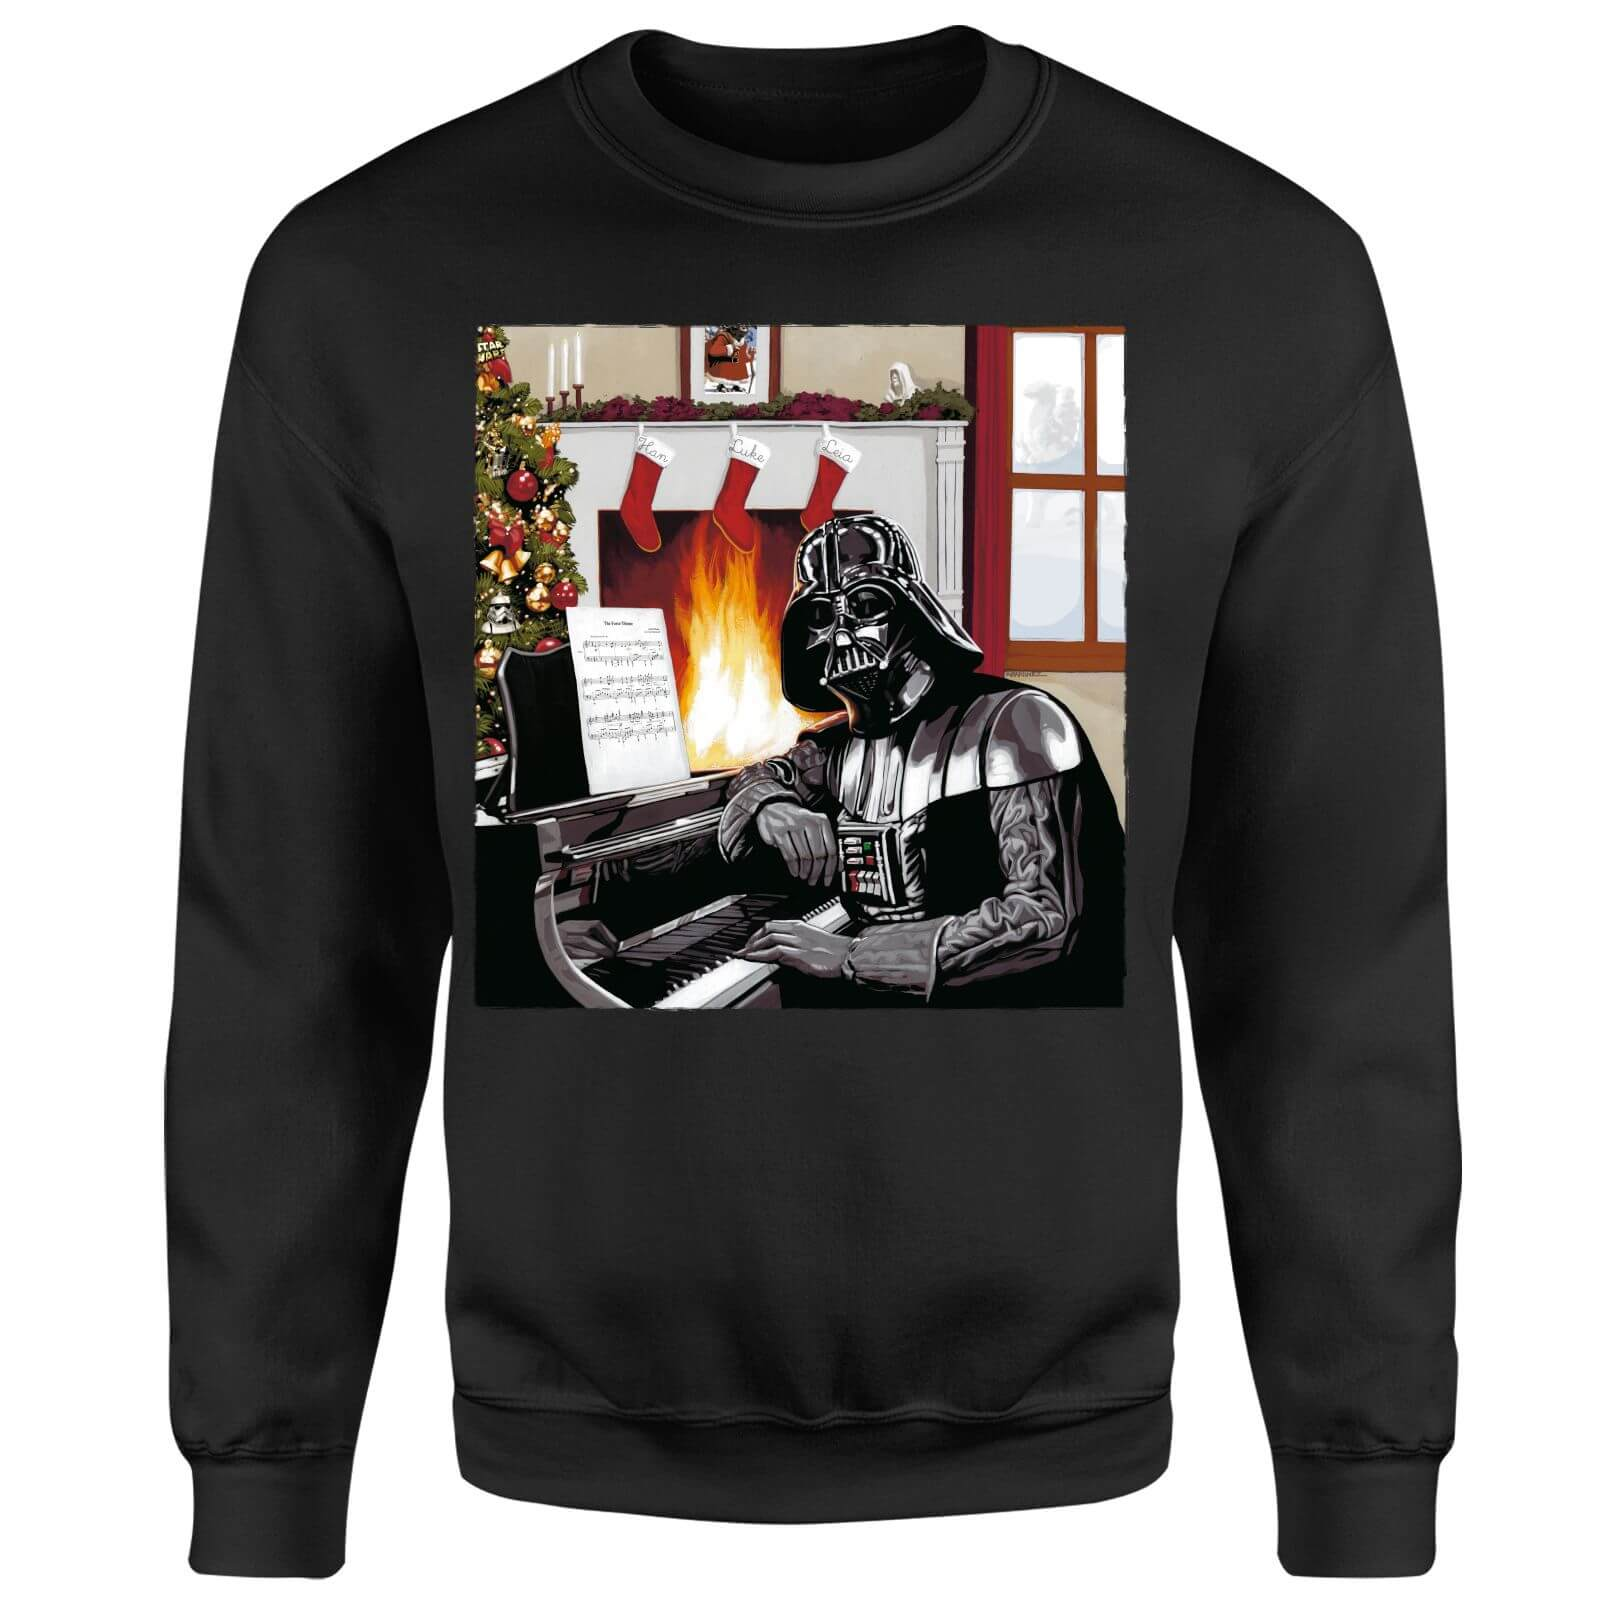 Star Wars Darth Vader Piano Player Black Christmas Sweatshirt